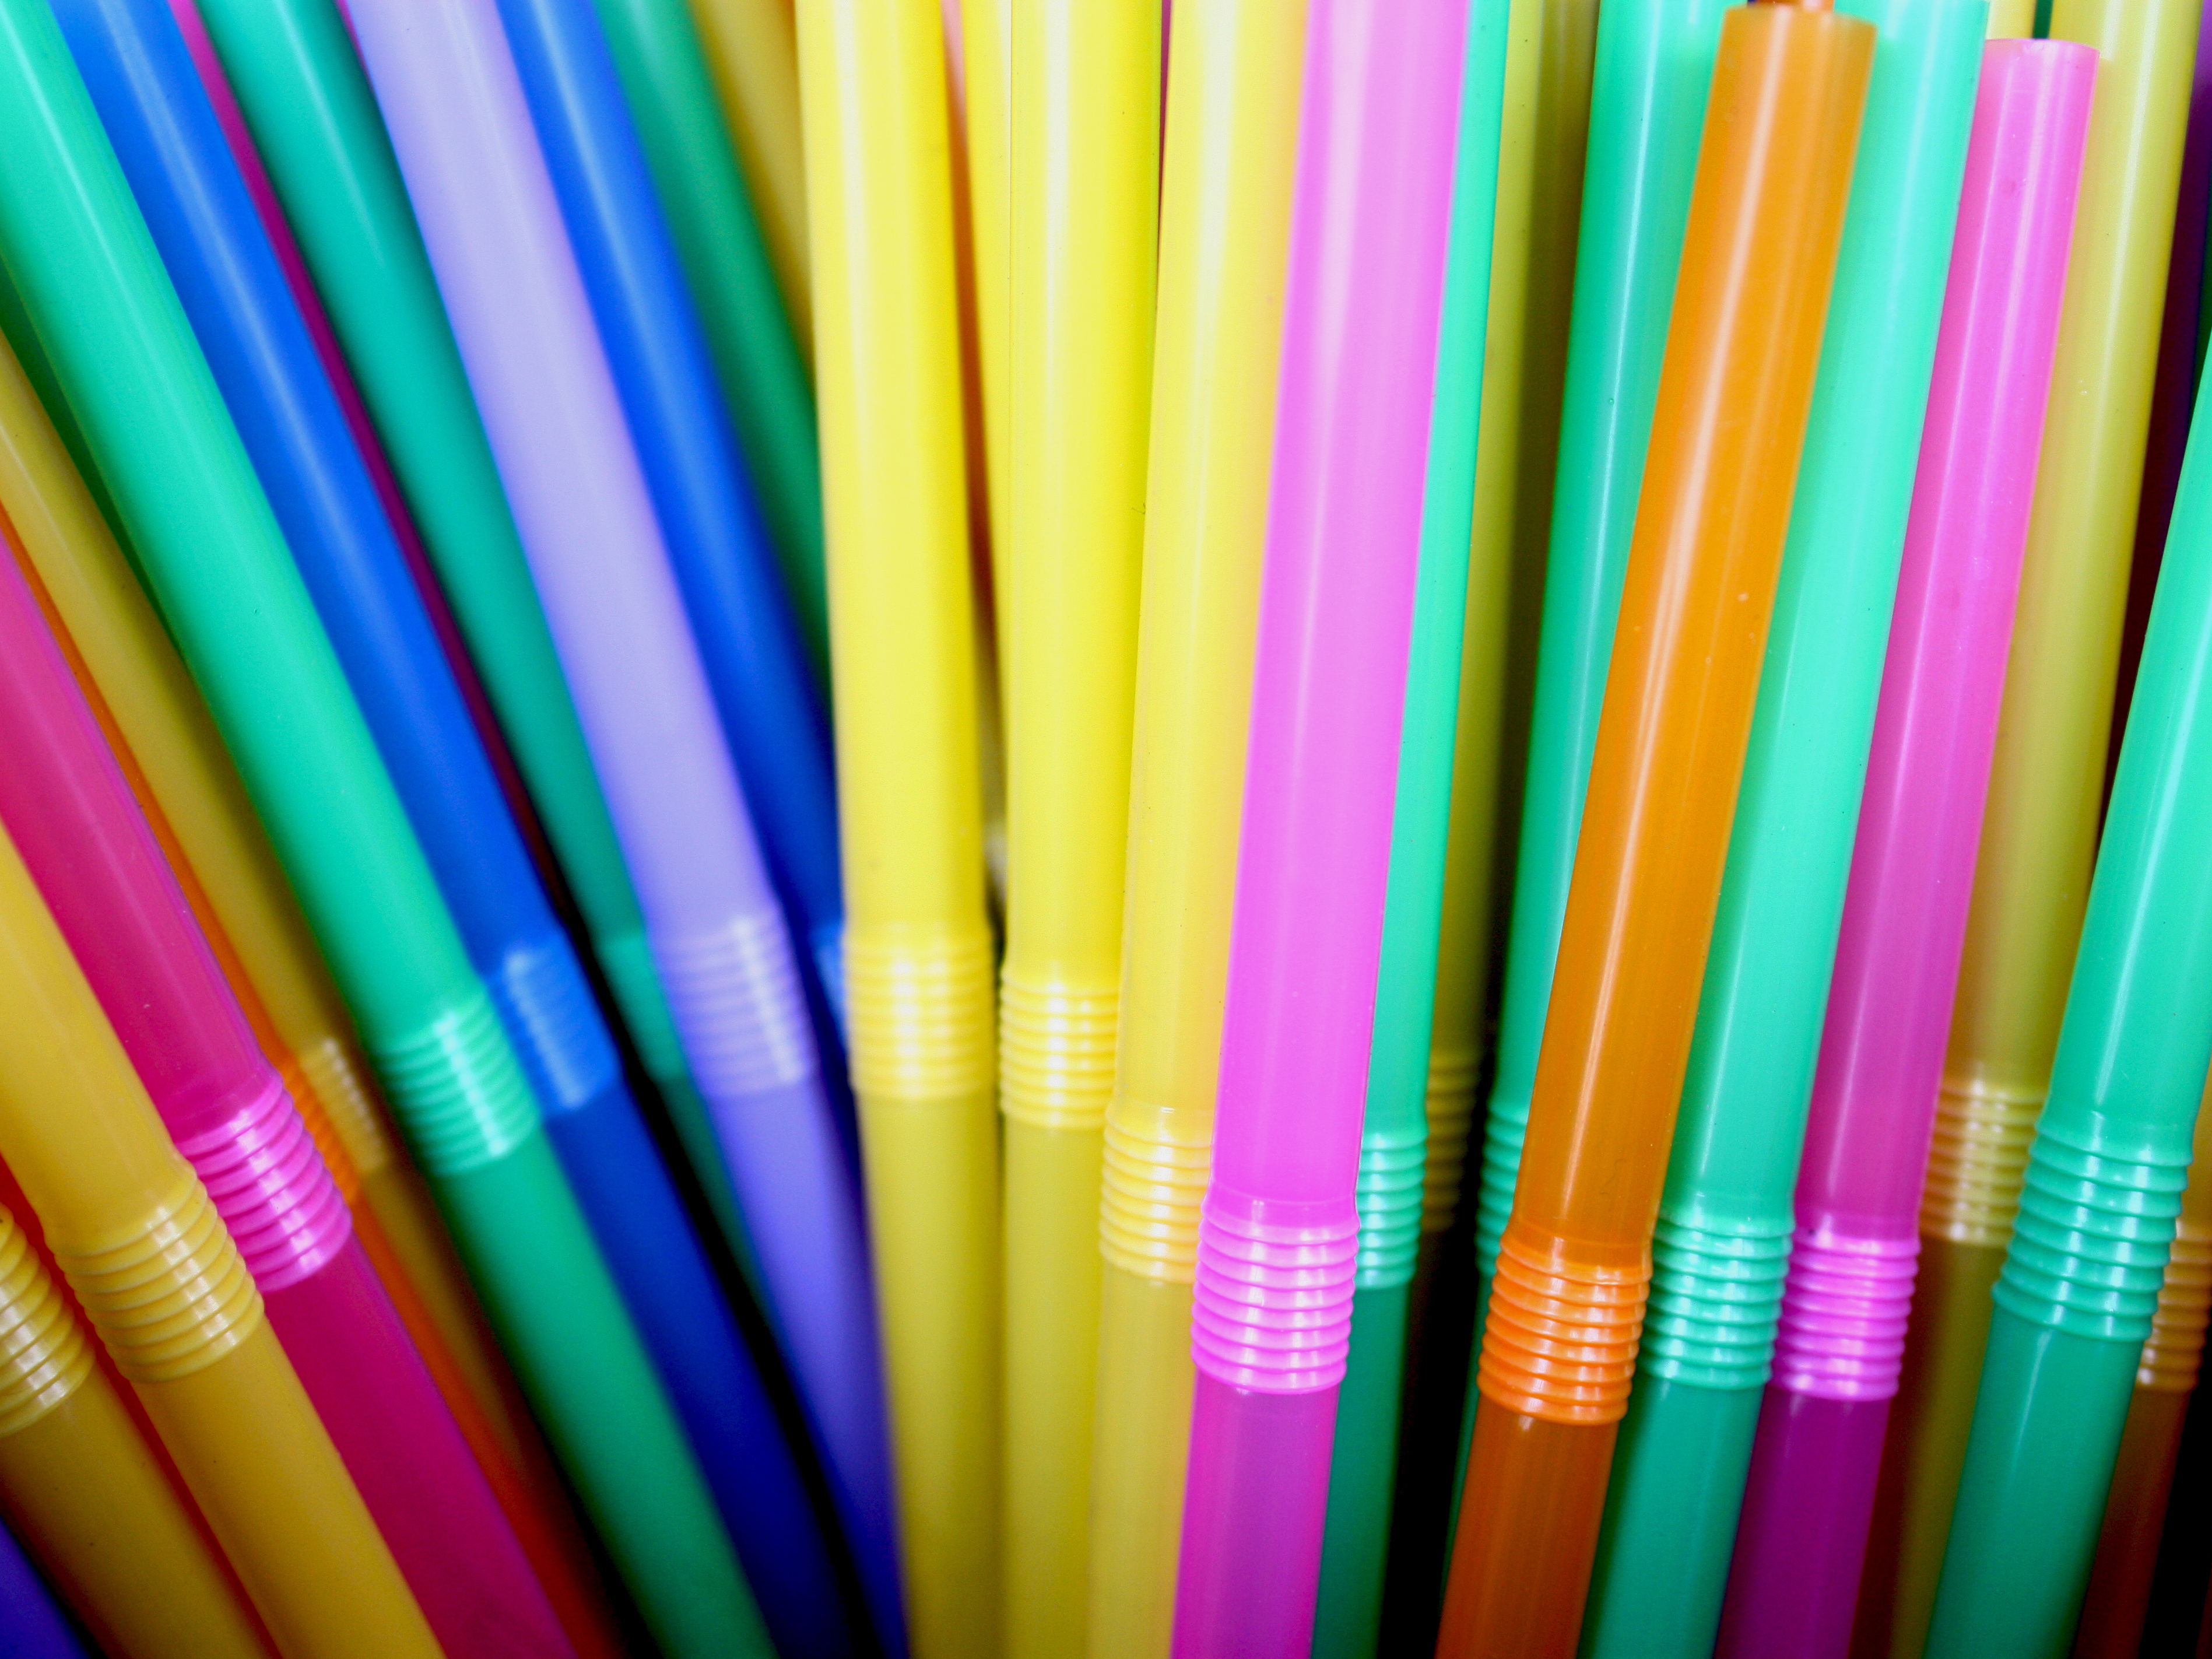 As cities and companies -- including Starbucks -- move to oust straws in a bid to reduce pollution, people with disabilities say they're losing access to a necessary, lifesaving tool. (Thn Rocn Khosit Rath Phachr Sukh /EyeEm via Getty Images)